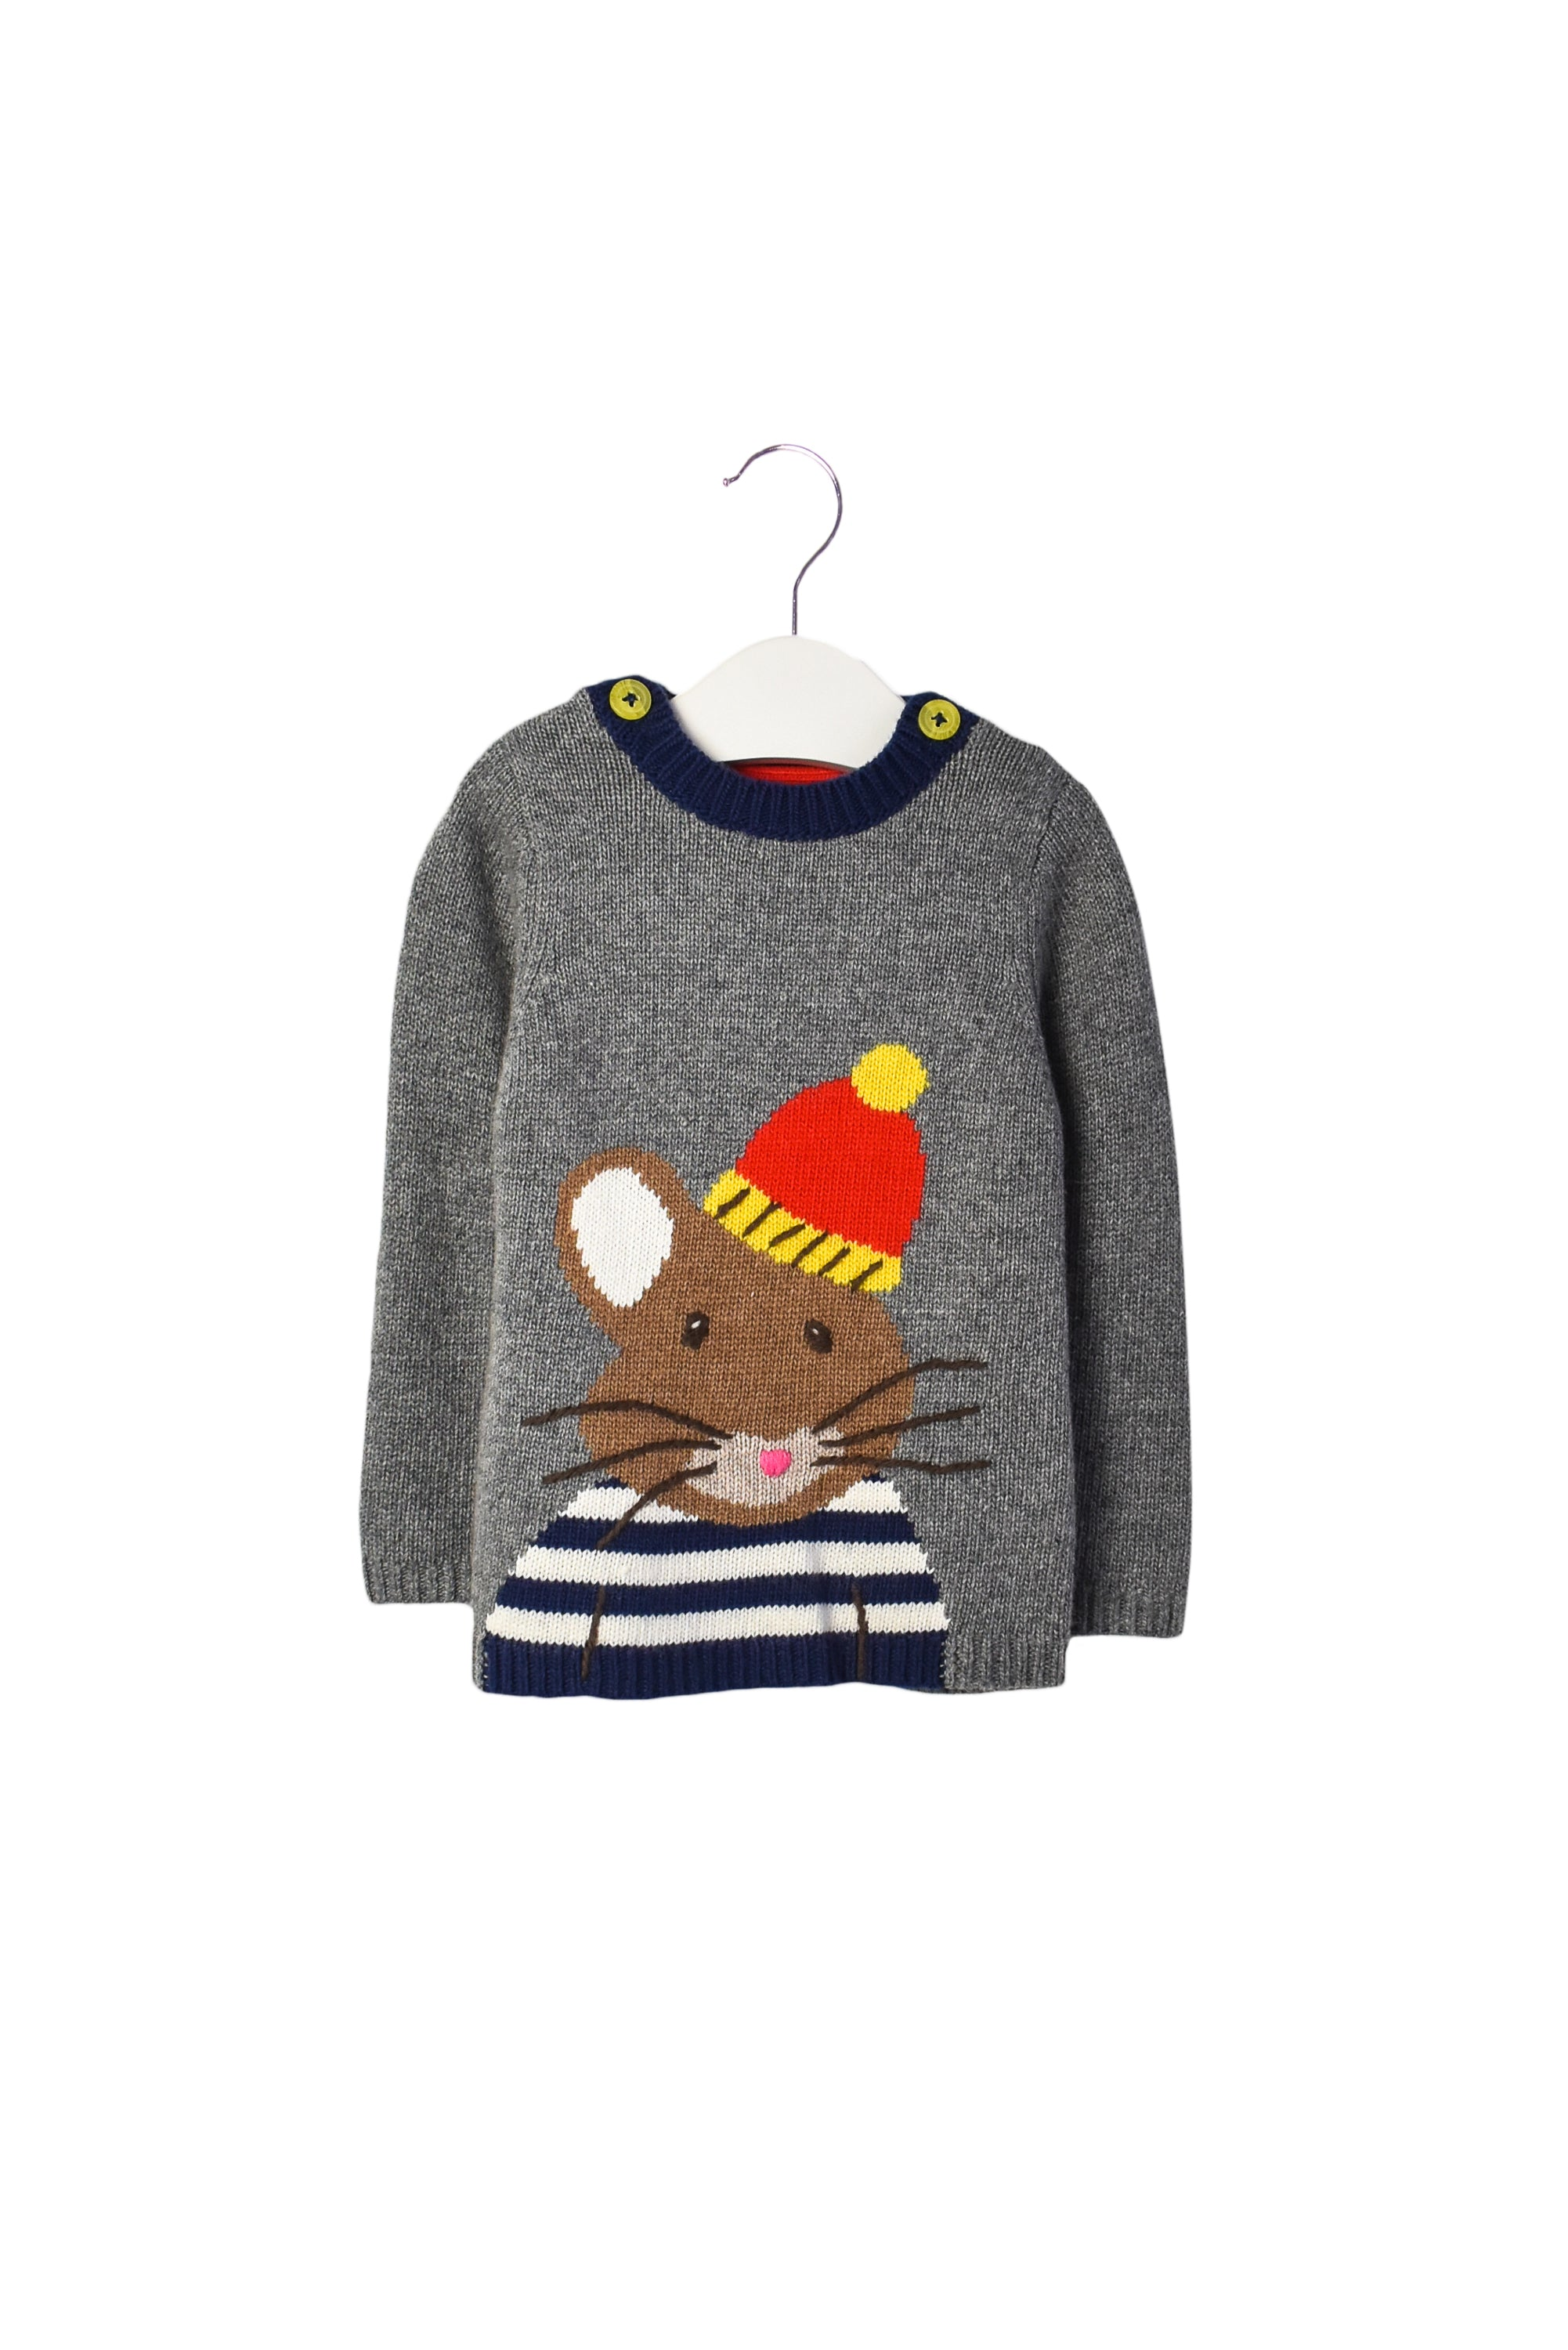 10006991 Boden Baby~ Sweater 12-18M at Retykle